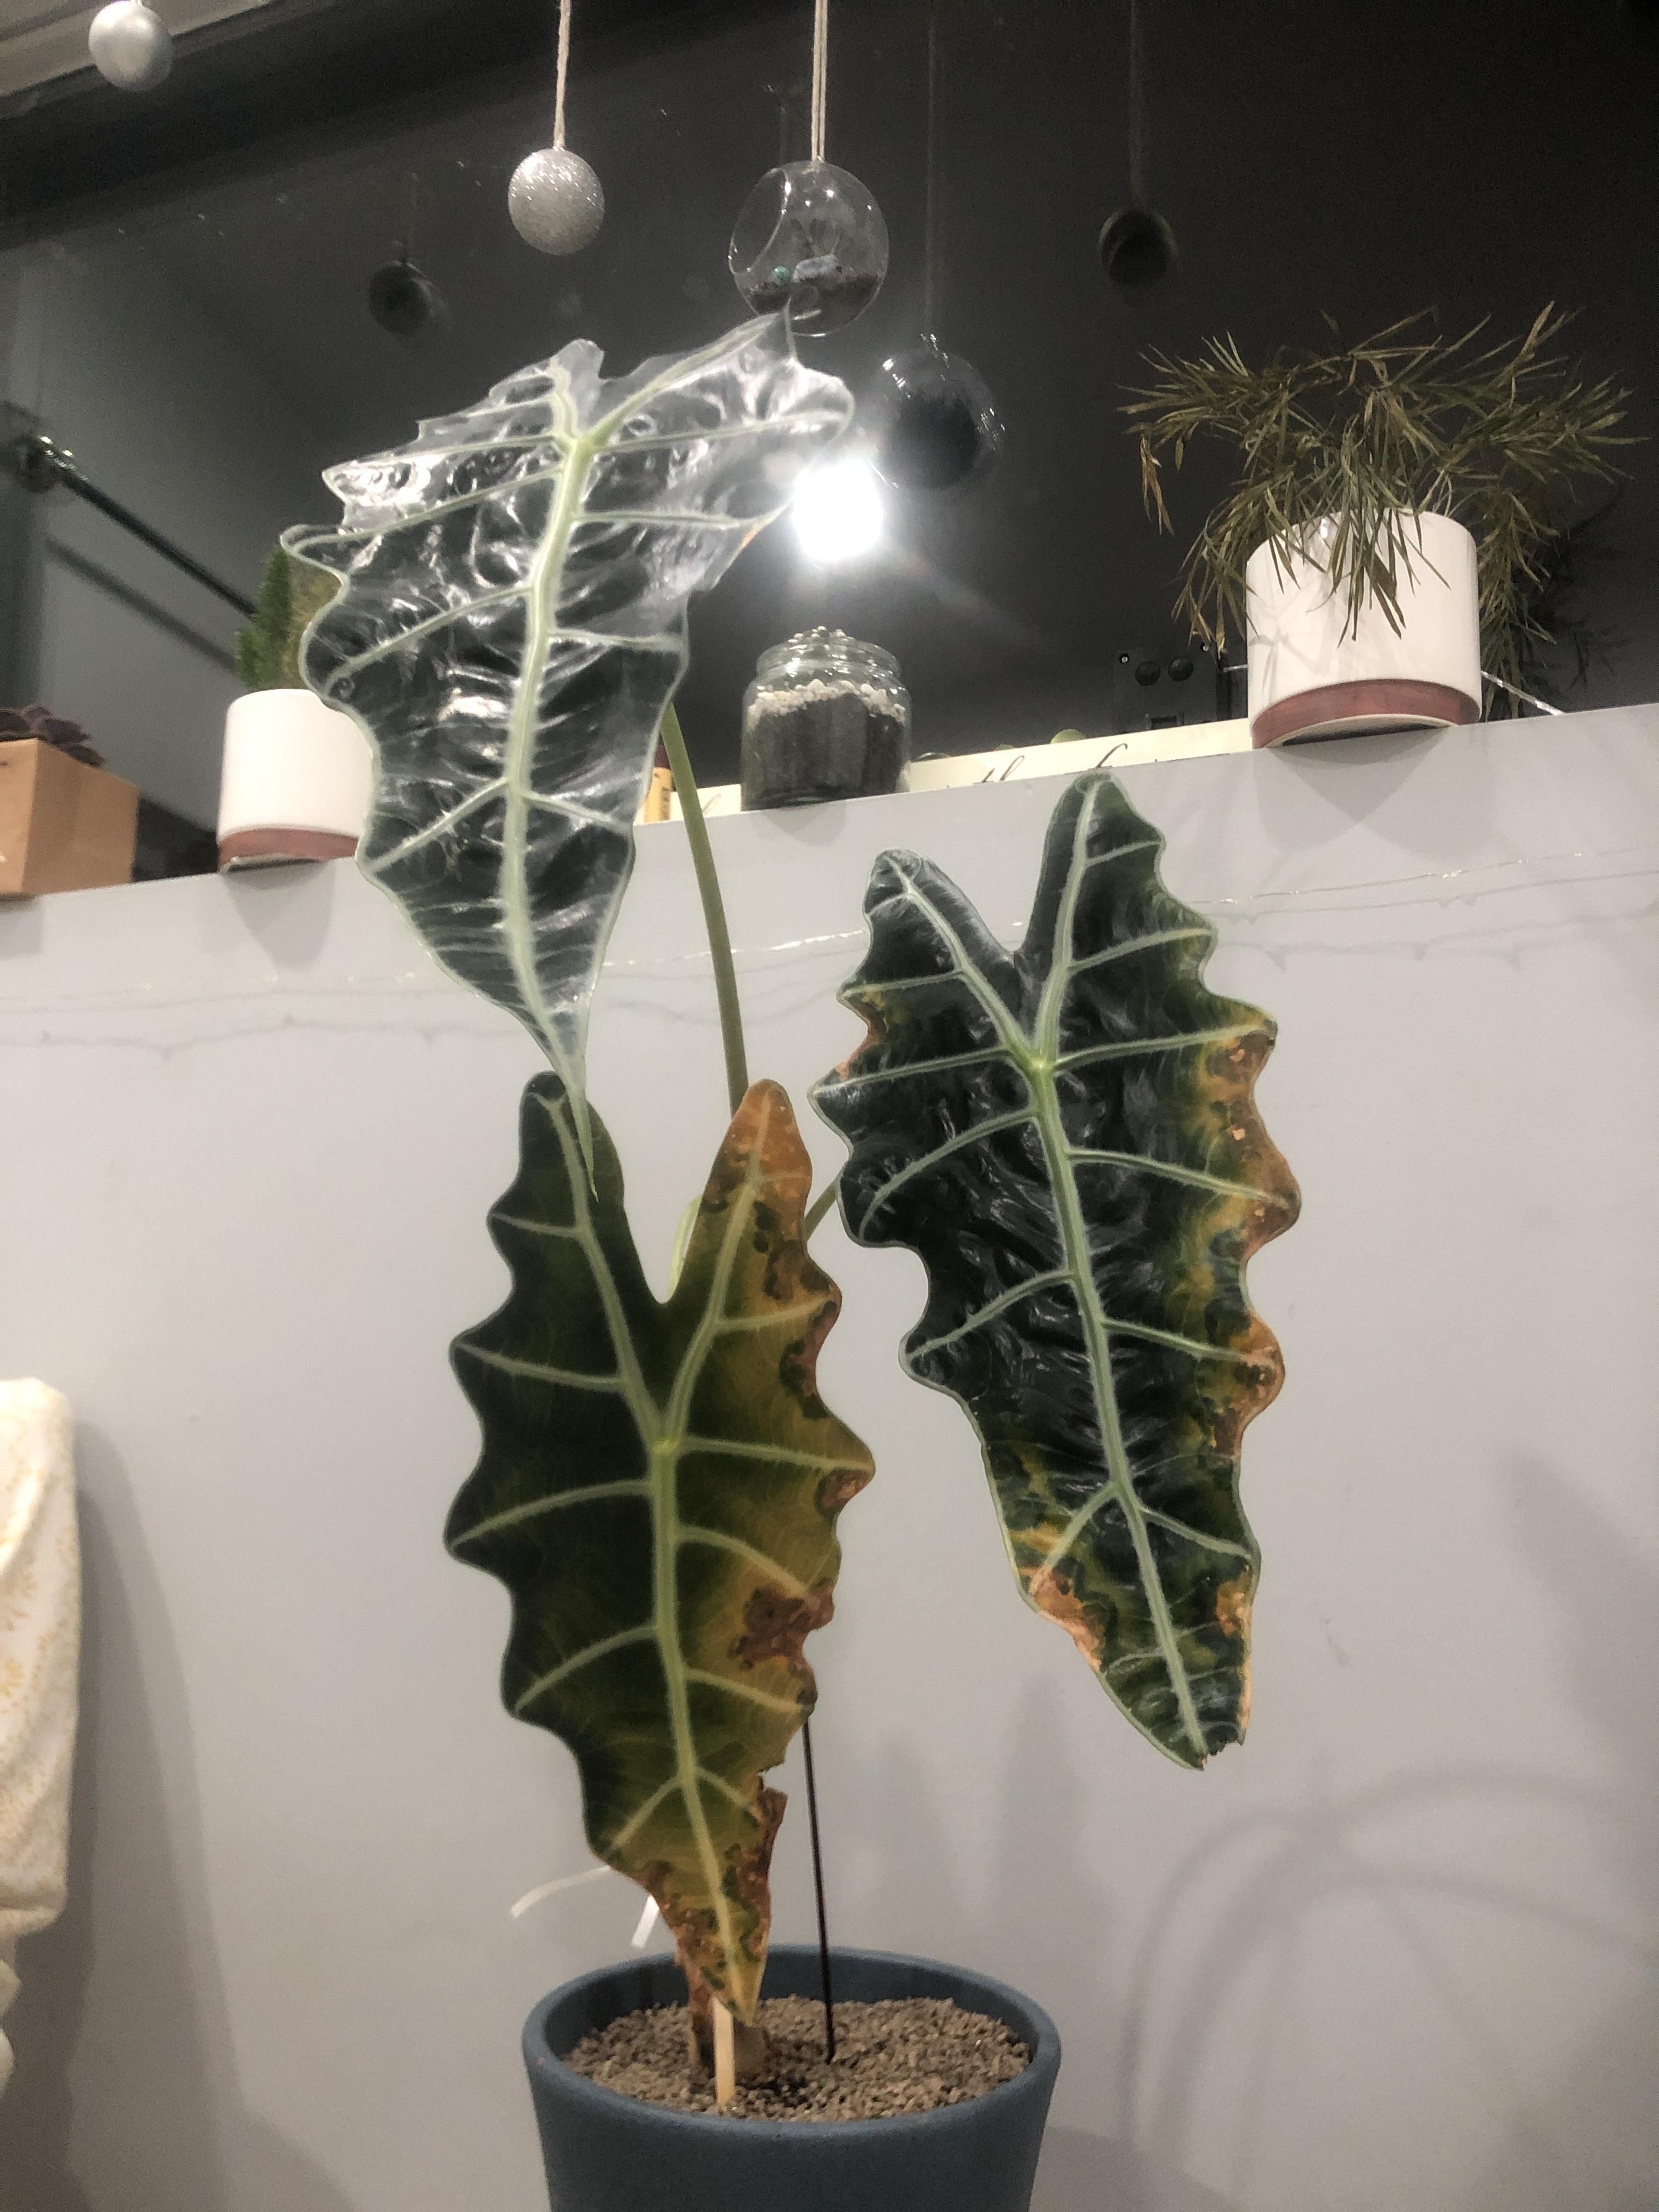 The Leaves On My Precious Alocasia Plant Are Turning Yellow And Brown Please Help Me I Love Thi Alocasia Plant Plant Leaves Turning Yellow Plant Leaves Turning